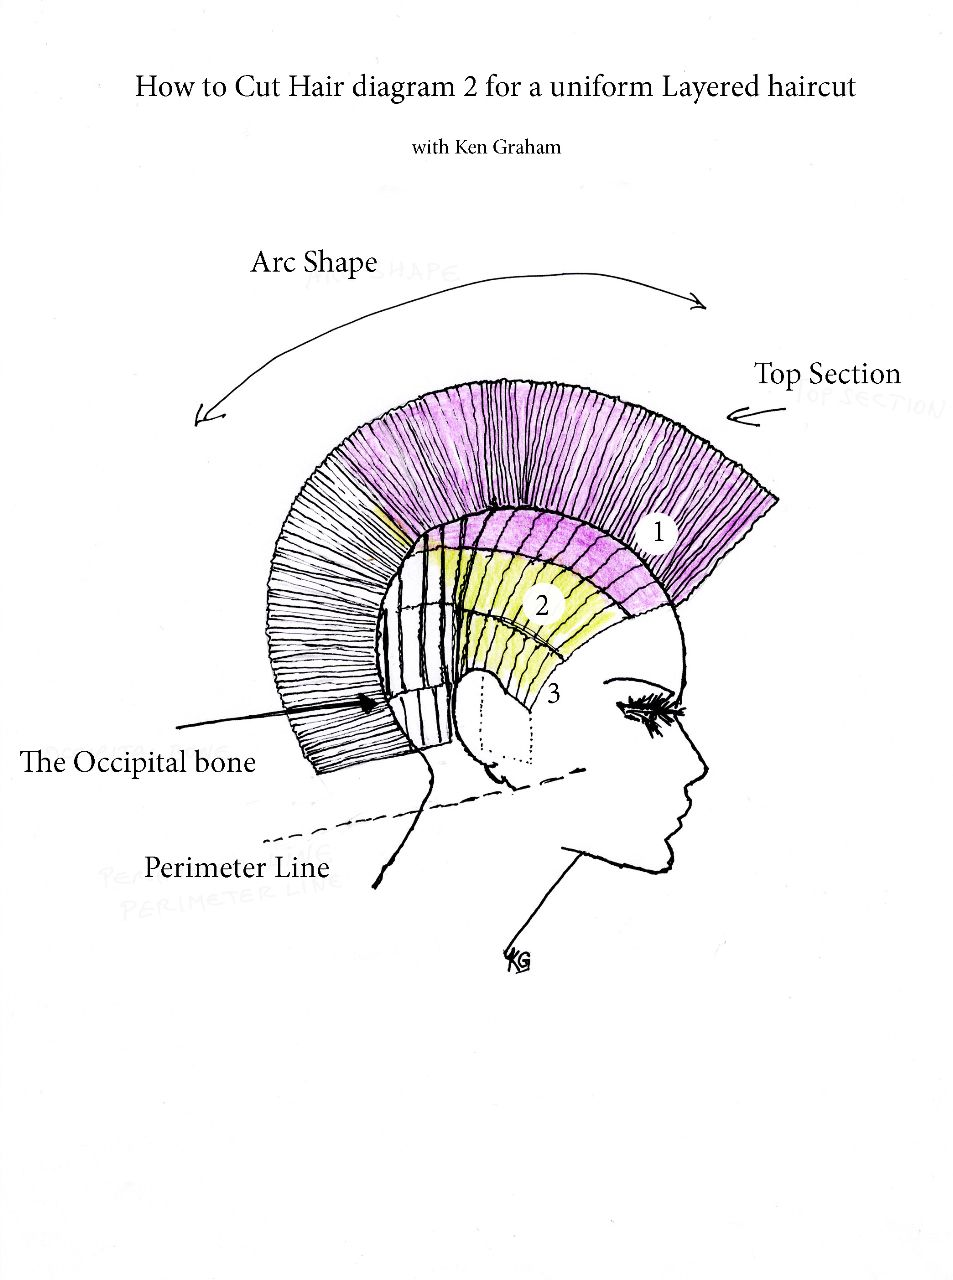 How To Cut Hair In Layers Diagram2